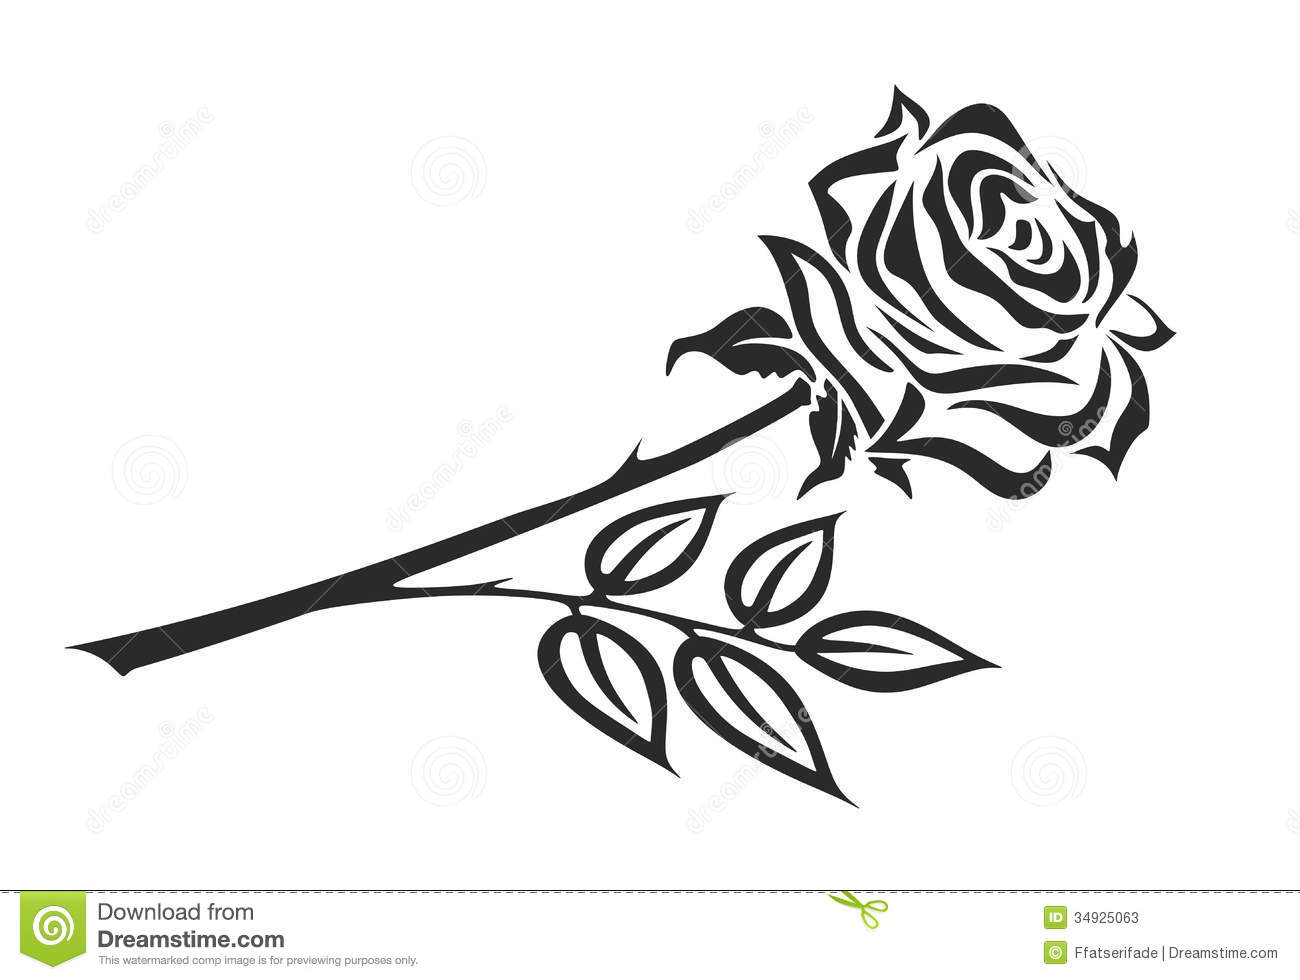 clipart roses black and white - photo #35